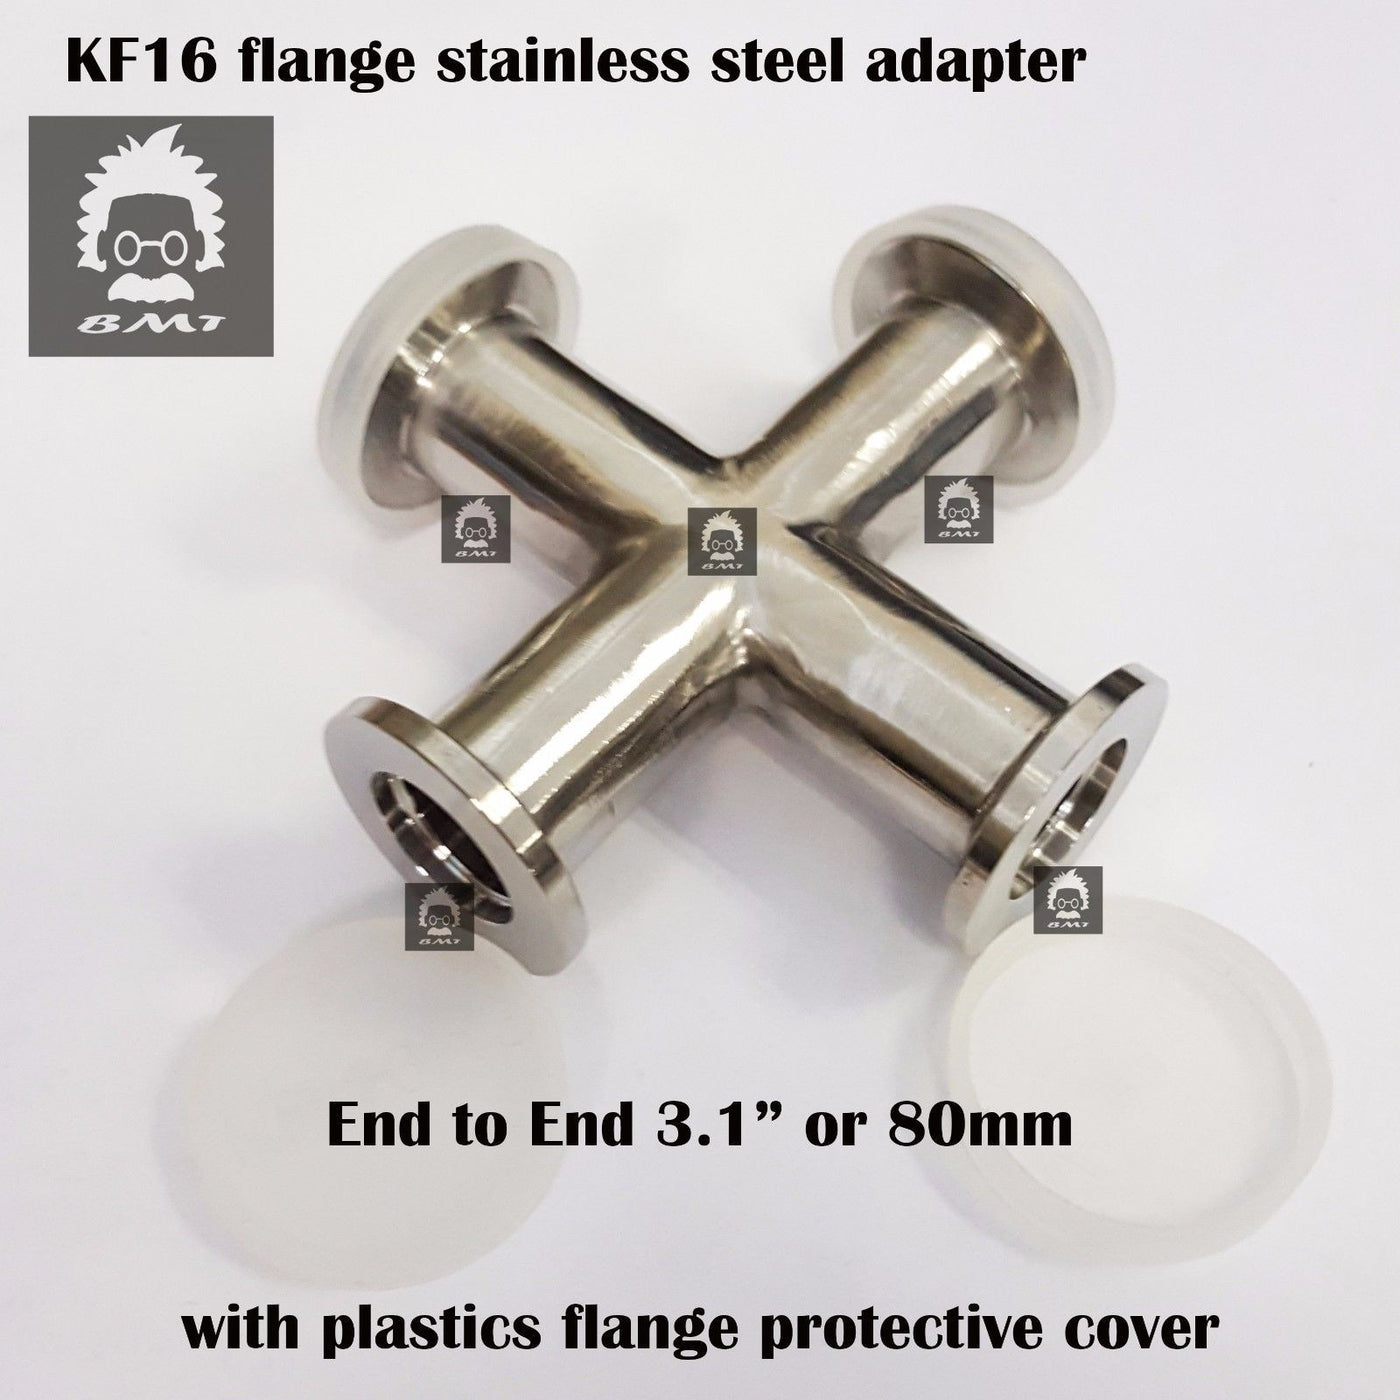 KF16 Cross vacuum adapter, 4 ways all ends KF16 flange SS 304, finely  polished